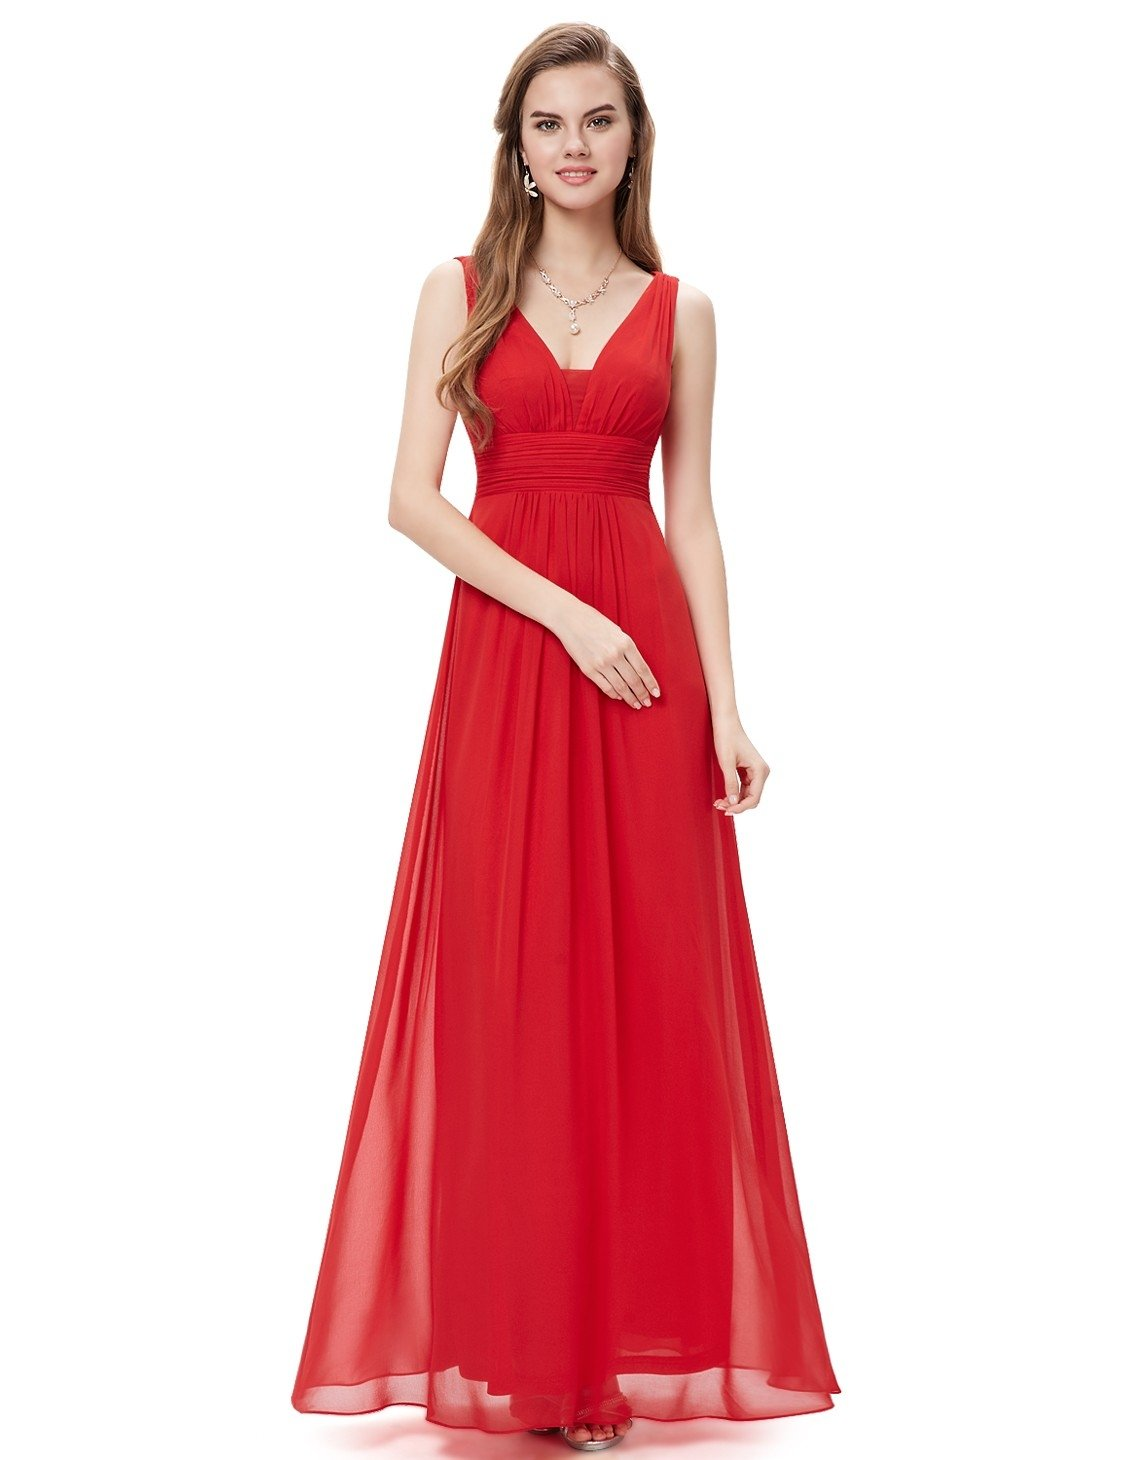 red-bridesmaid-dress-style-1